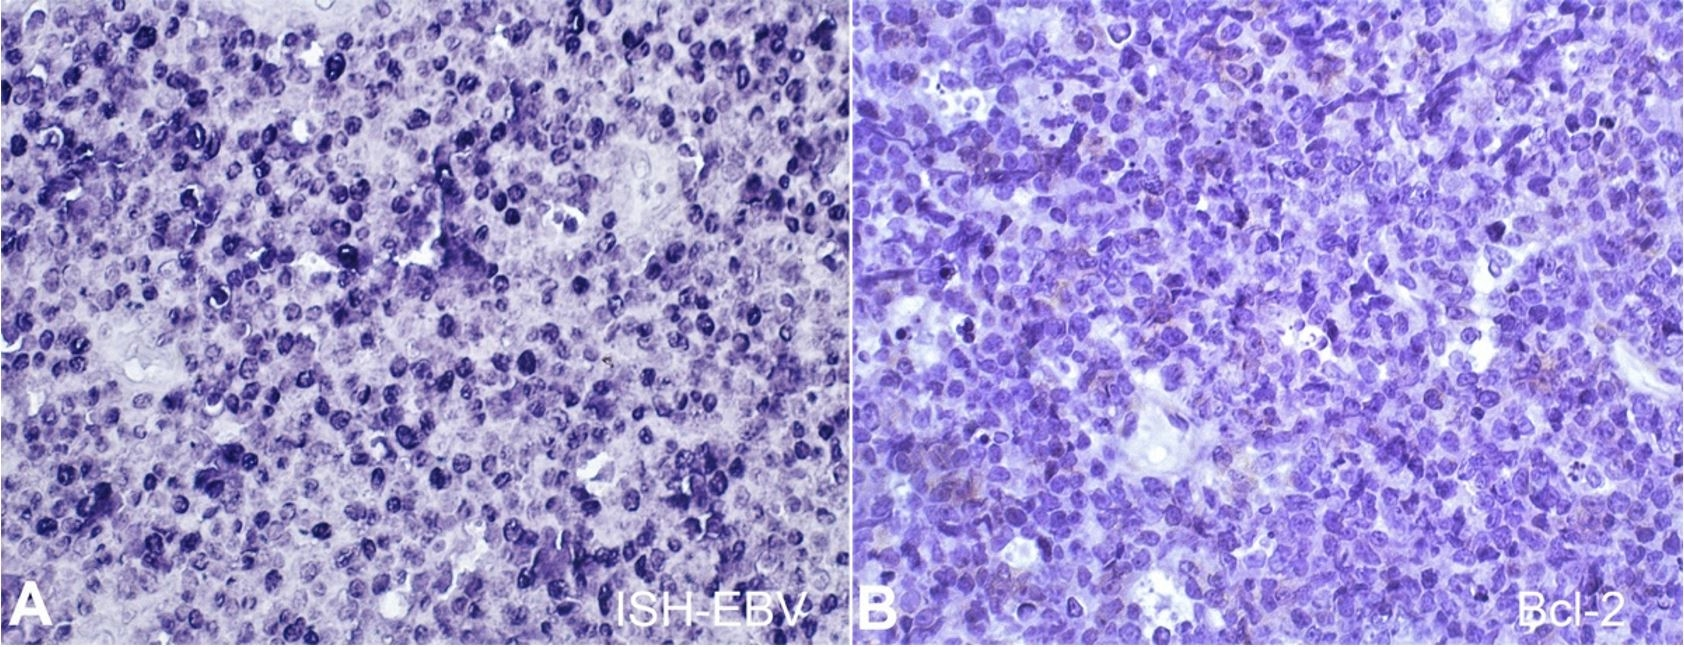 In situ hybridization and immunohistochemical features of sporadic Burkitt lymphoma. A – The tumor was EBV positive (ISH-EBV, 40x); B – Bcl-2 was negative (IHC, 40x).